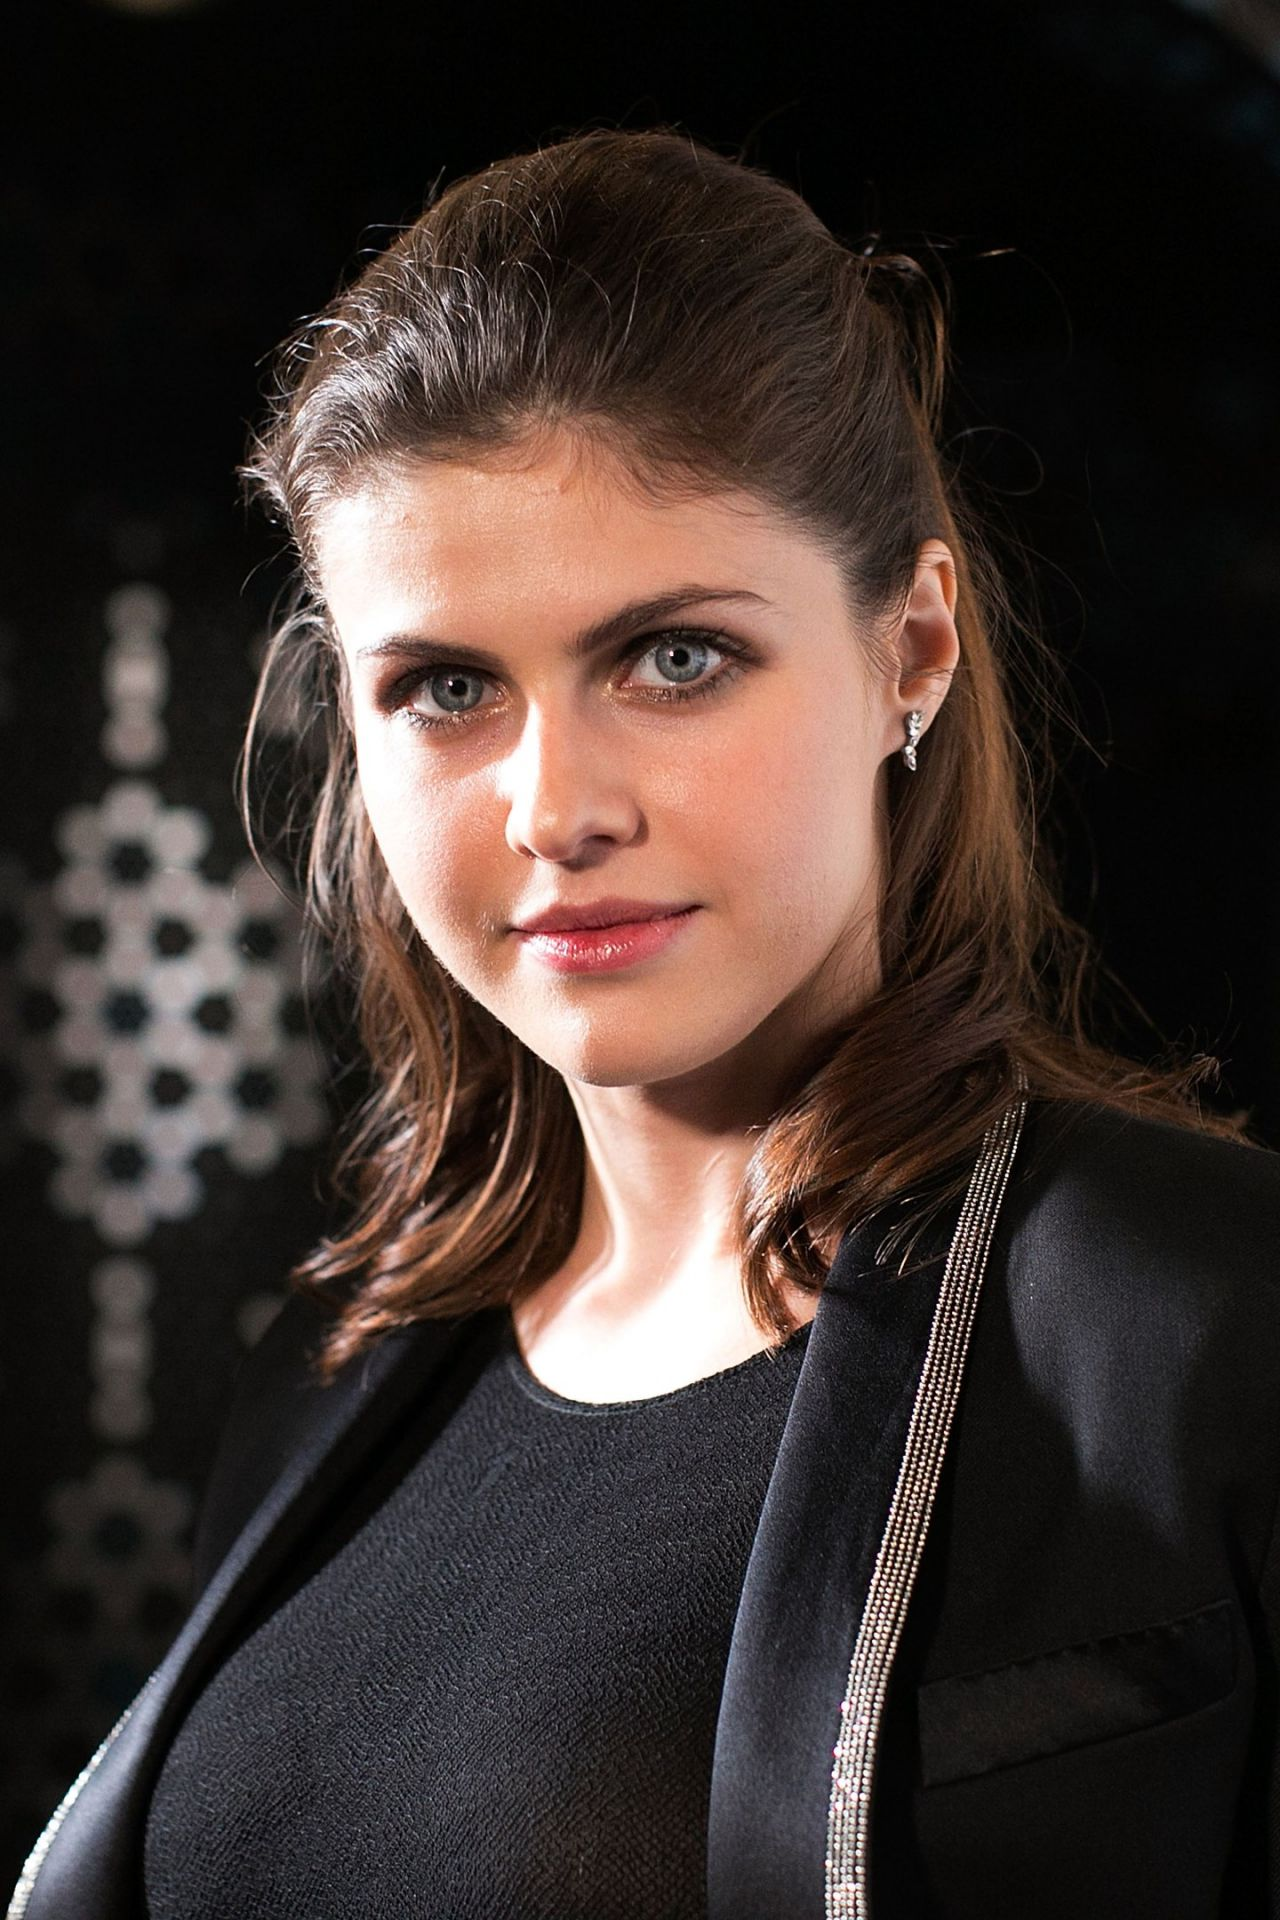 alexandra daddario wallpaper with Pic 830505 on Hollywood Celebrity Alexandra Daddario Wallpapers furthermore  additionally Madison Riley likewise 60036516 further Celebrity Alexandra Daddario Wallpapers.